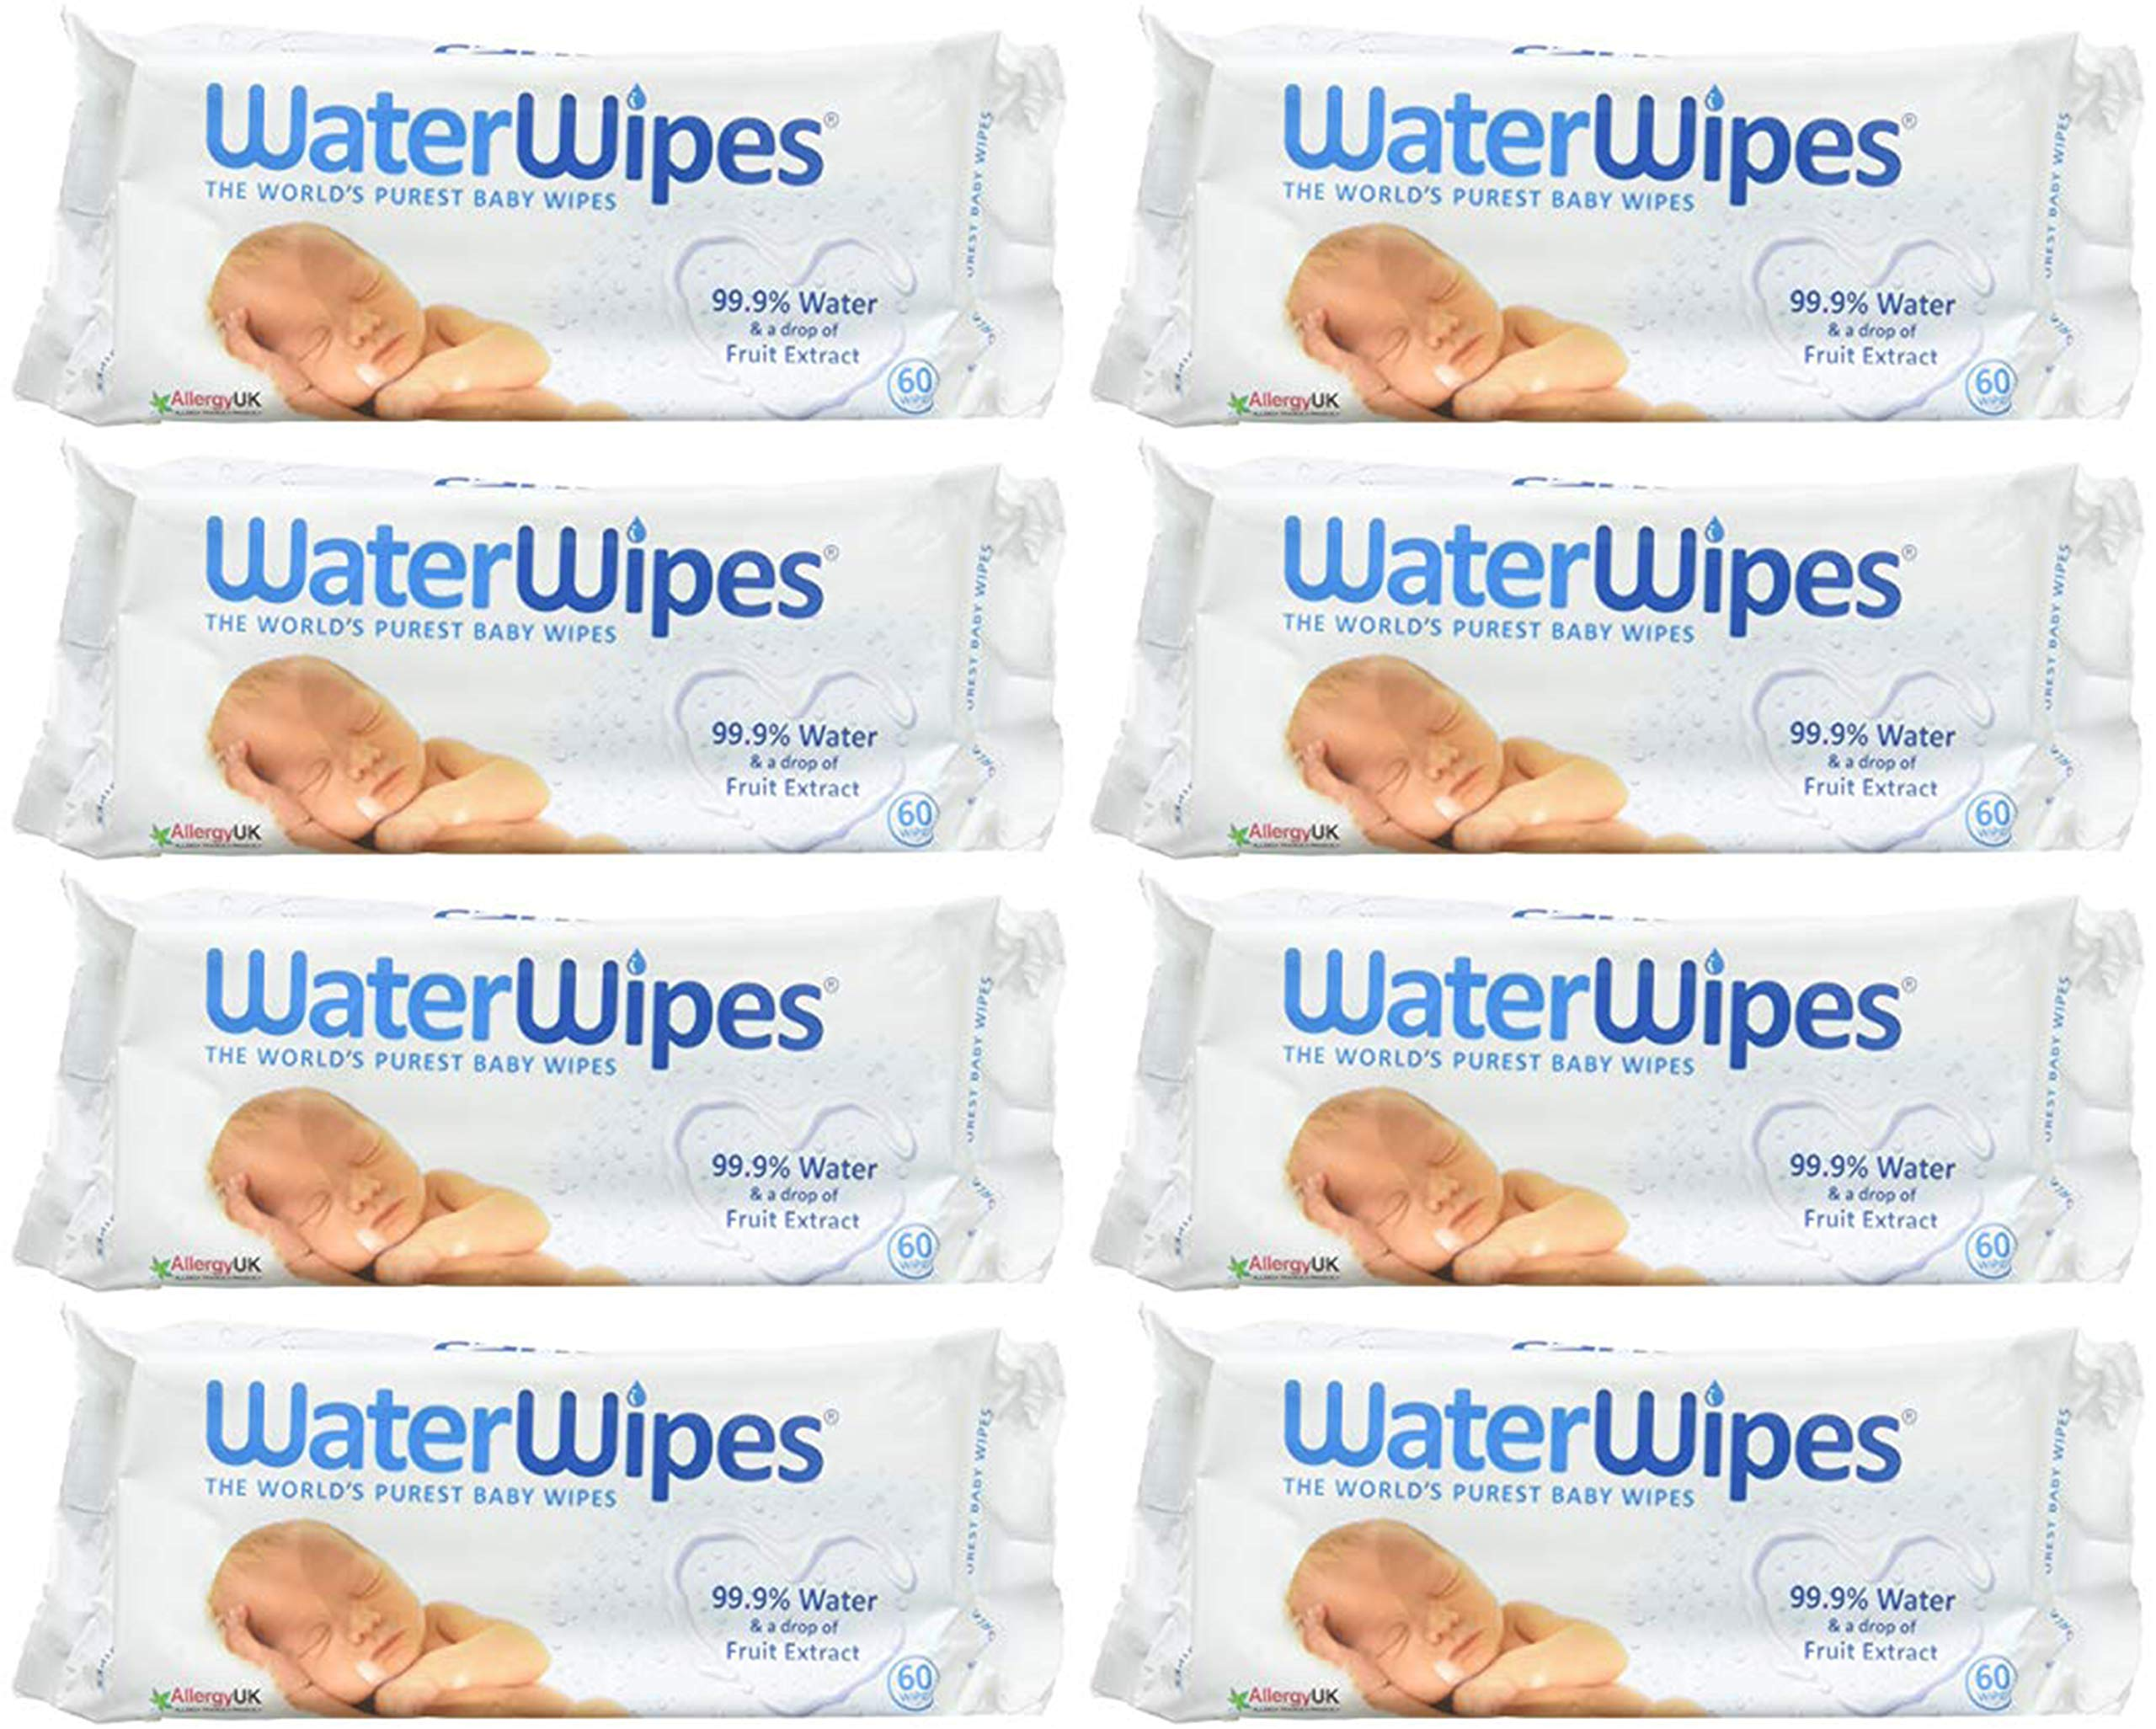 WaterWipes Sensitive Baby Wipes, Unscented, 480 Count (8 Packs of 60 Count) by WaterWipes